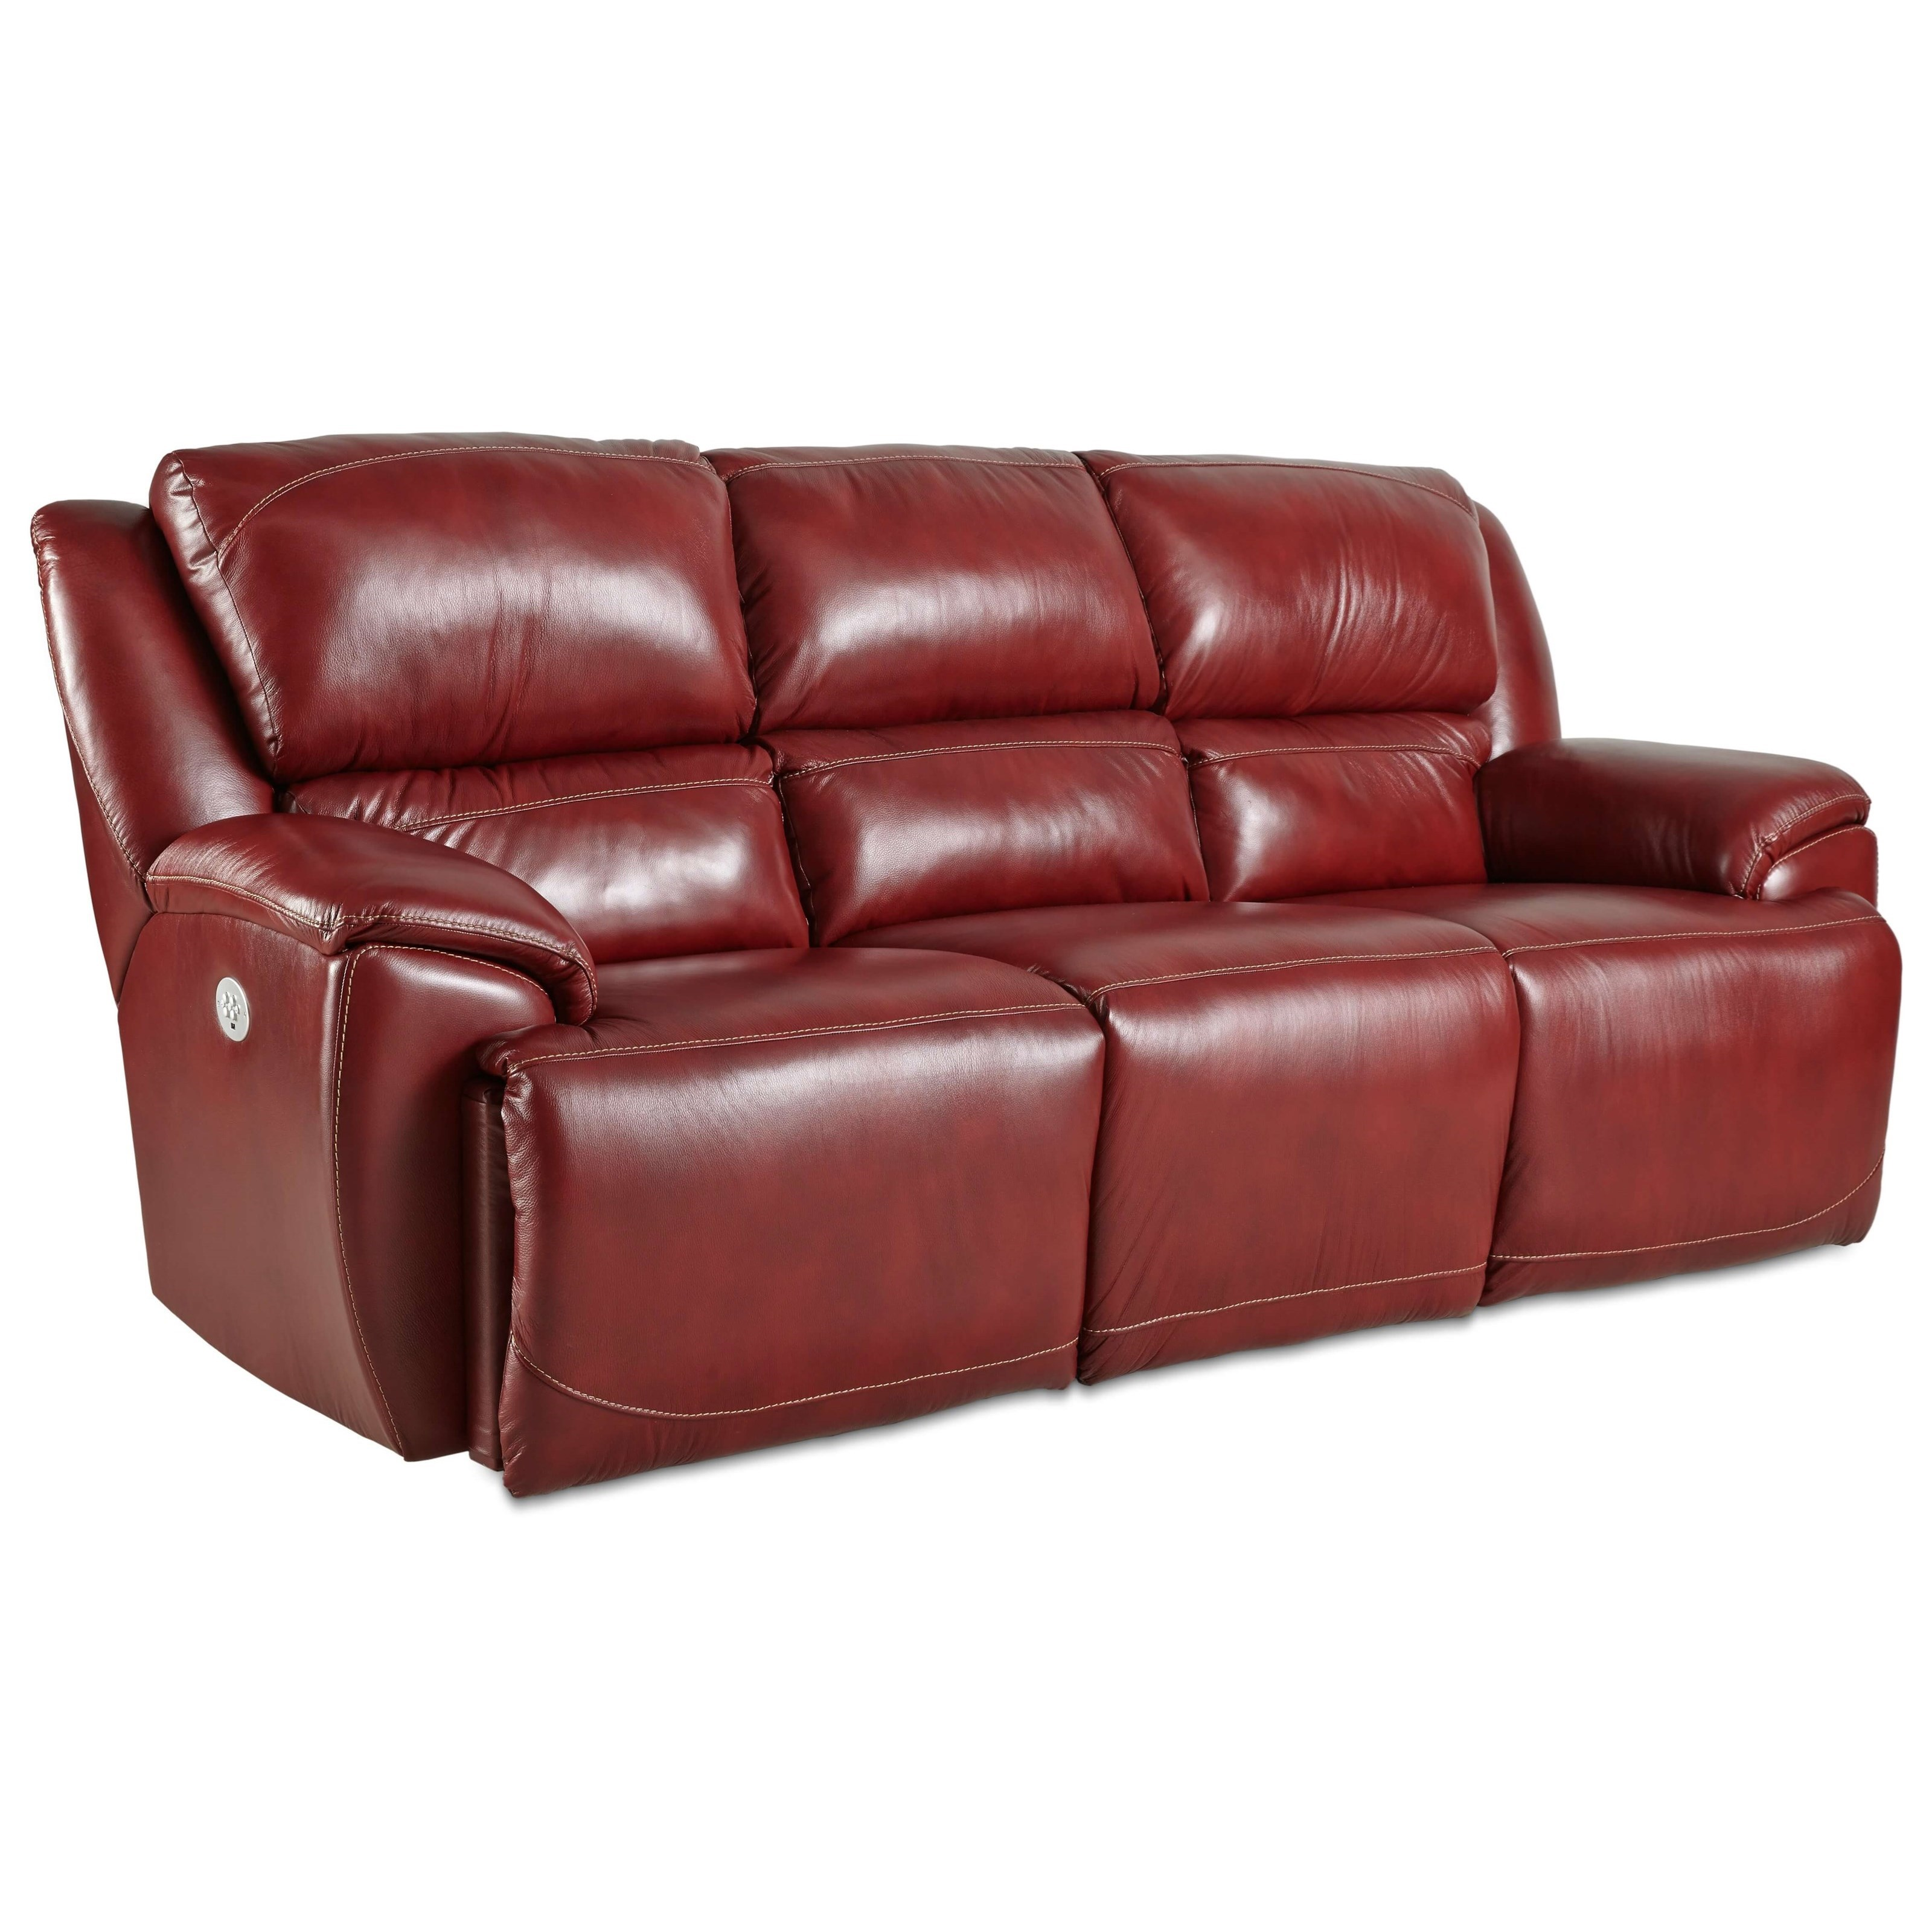 furniture room living kane padre double power recliner s products loveseat reclining console loveseats